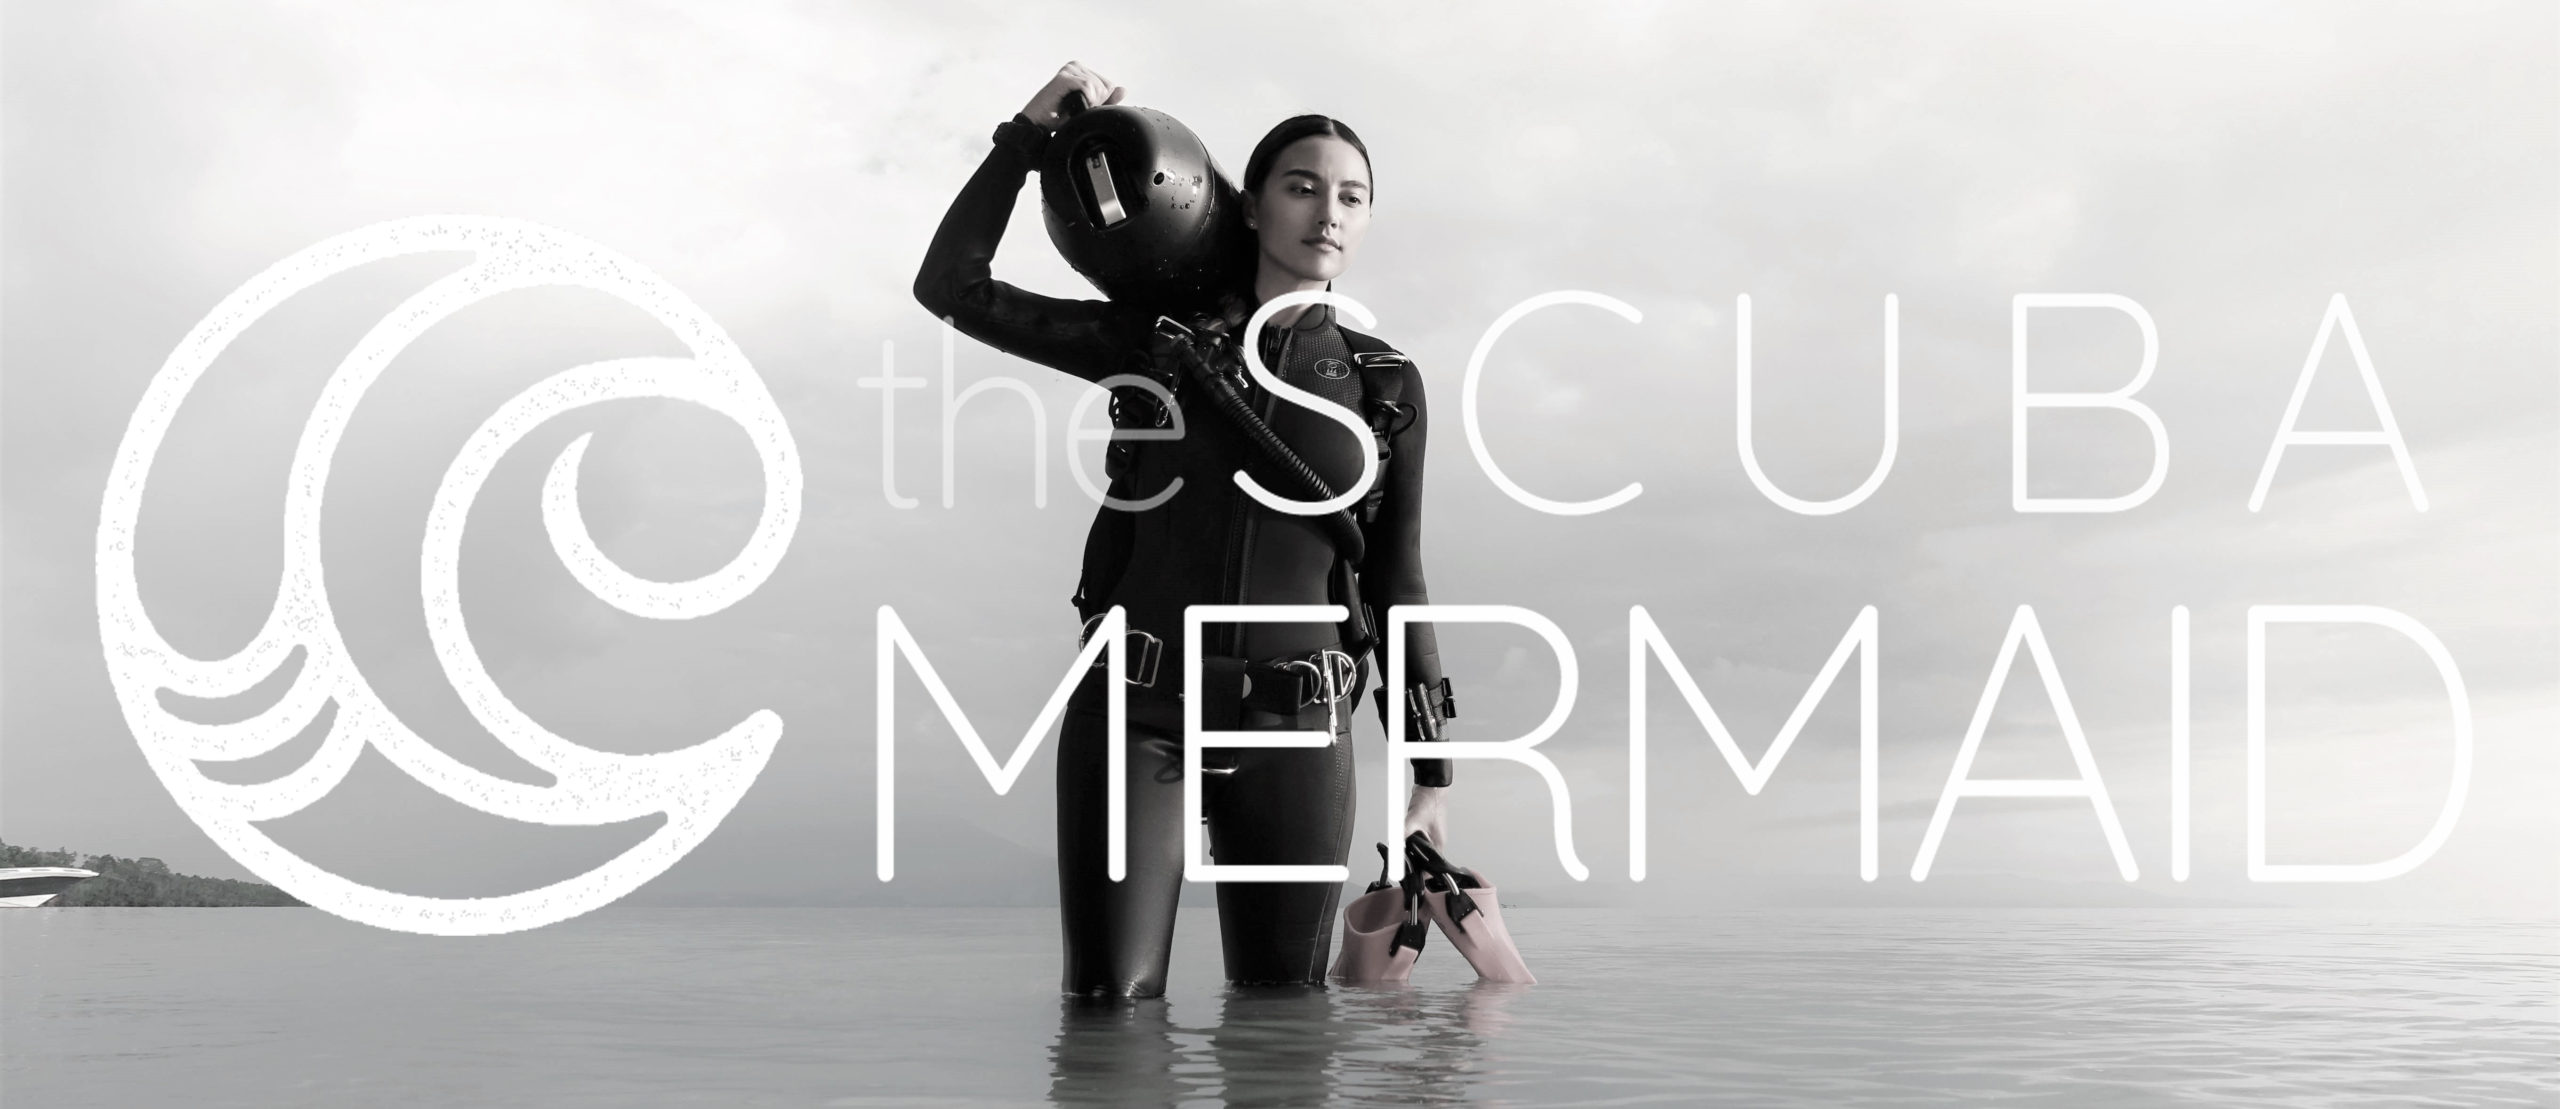 The Scuba Mermaid